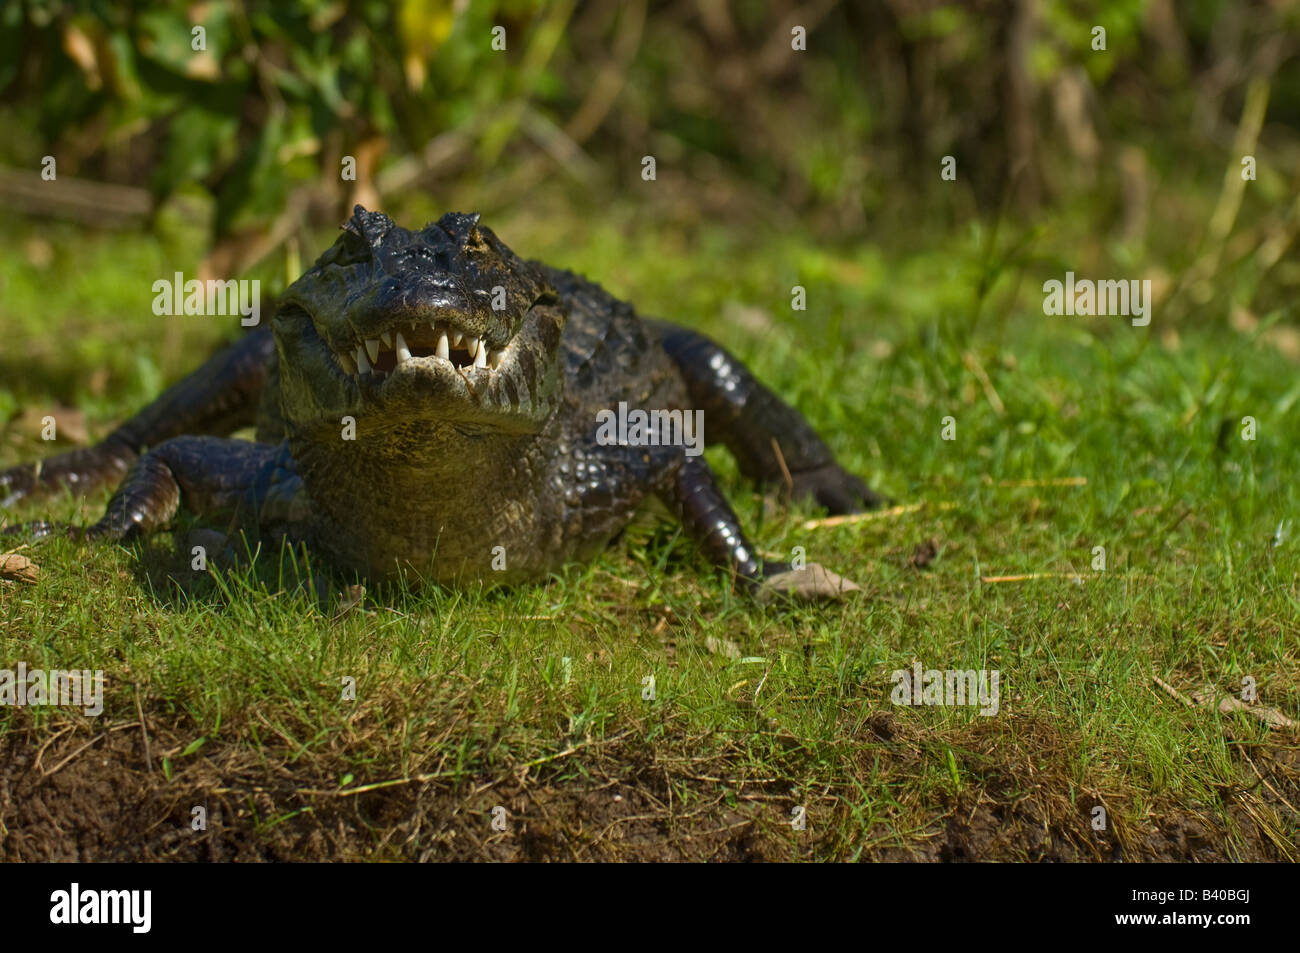 Jacare Caiman or Paraguay Caiman Caiman yacare in the Pantanal Mato Grosso do Sul Brazil - Stock Image